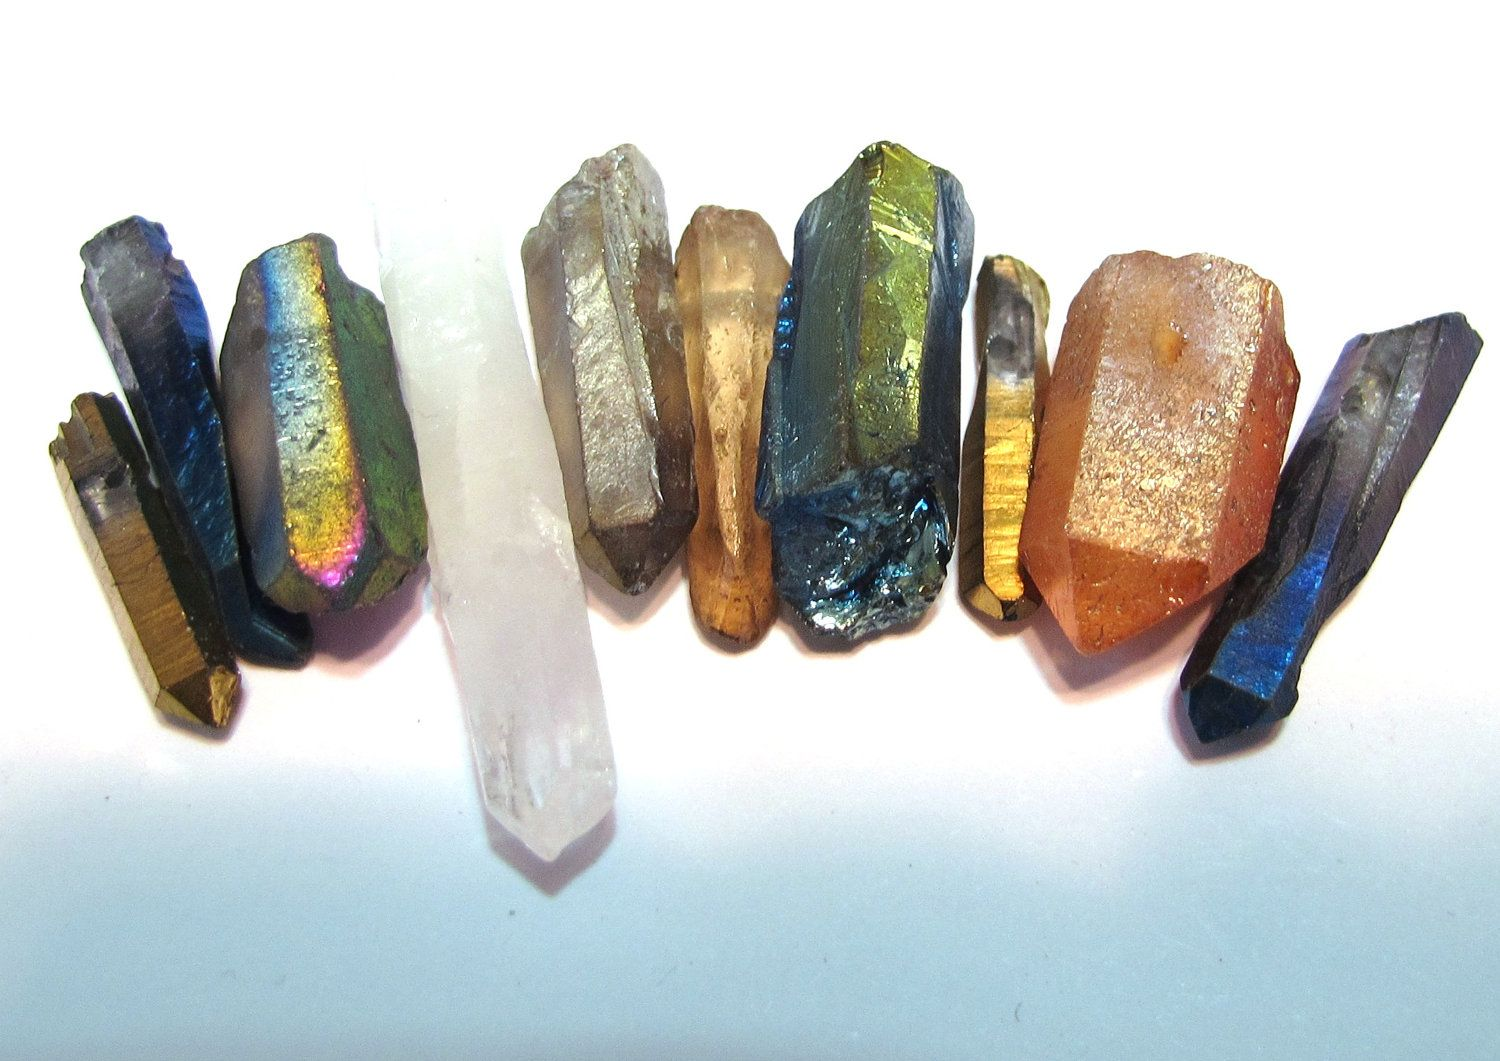 Natural rock crystal points druzy type titanium and mystic coated mixed sampler 10 piece lot. $5.00, via Etsy.